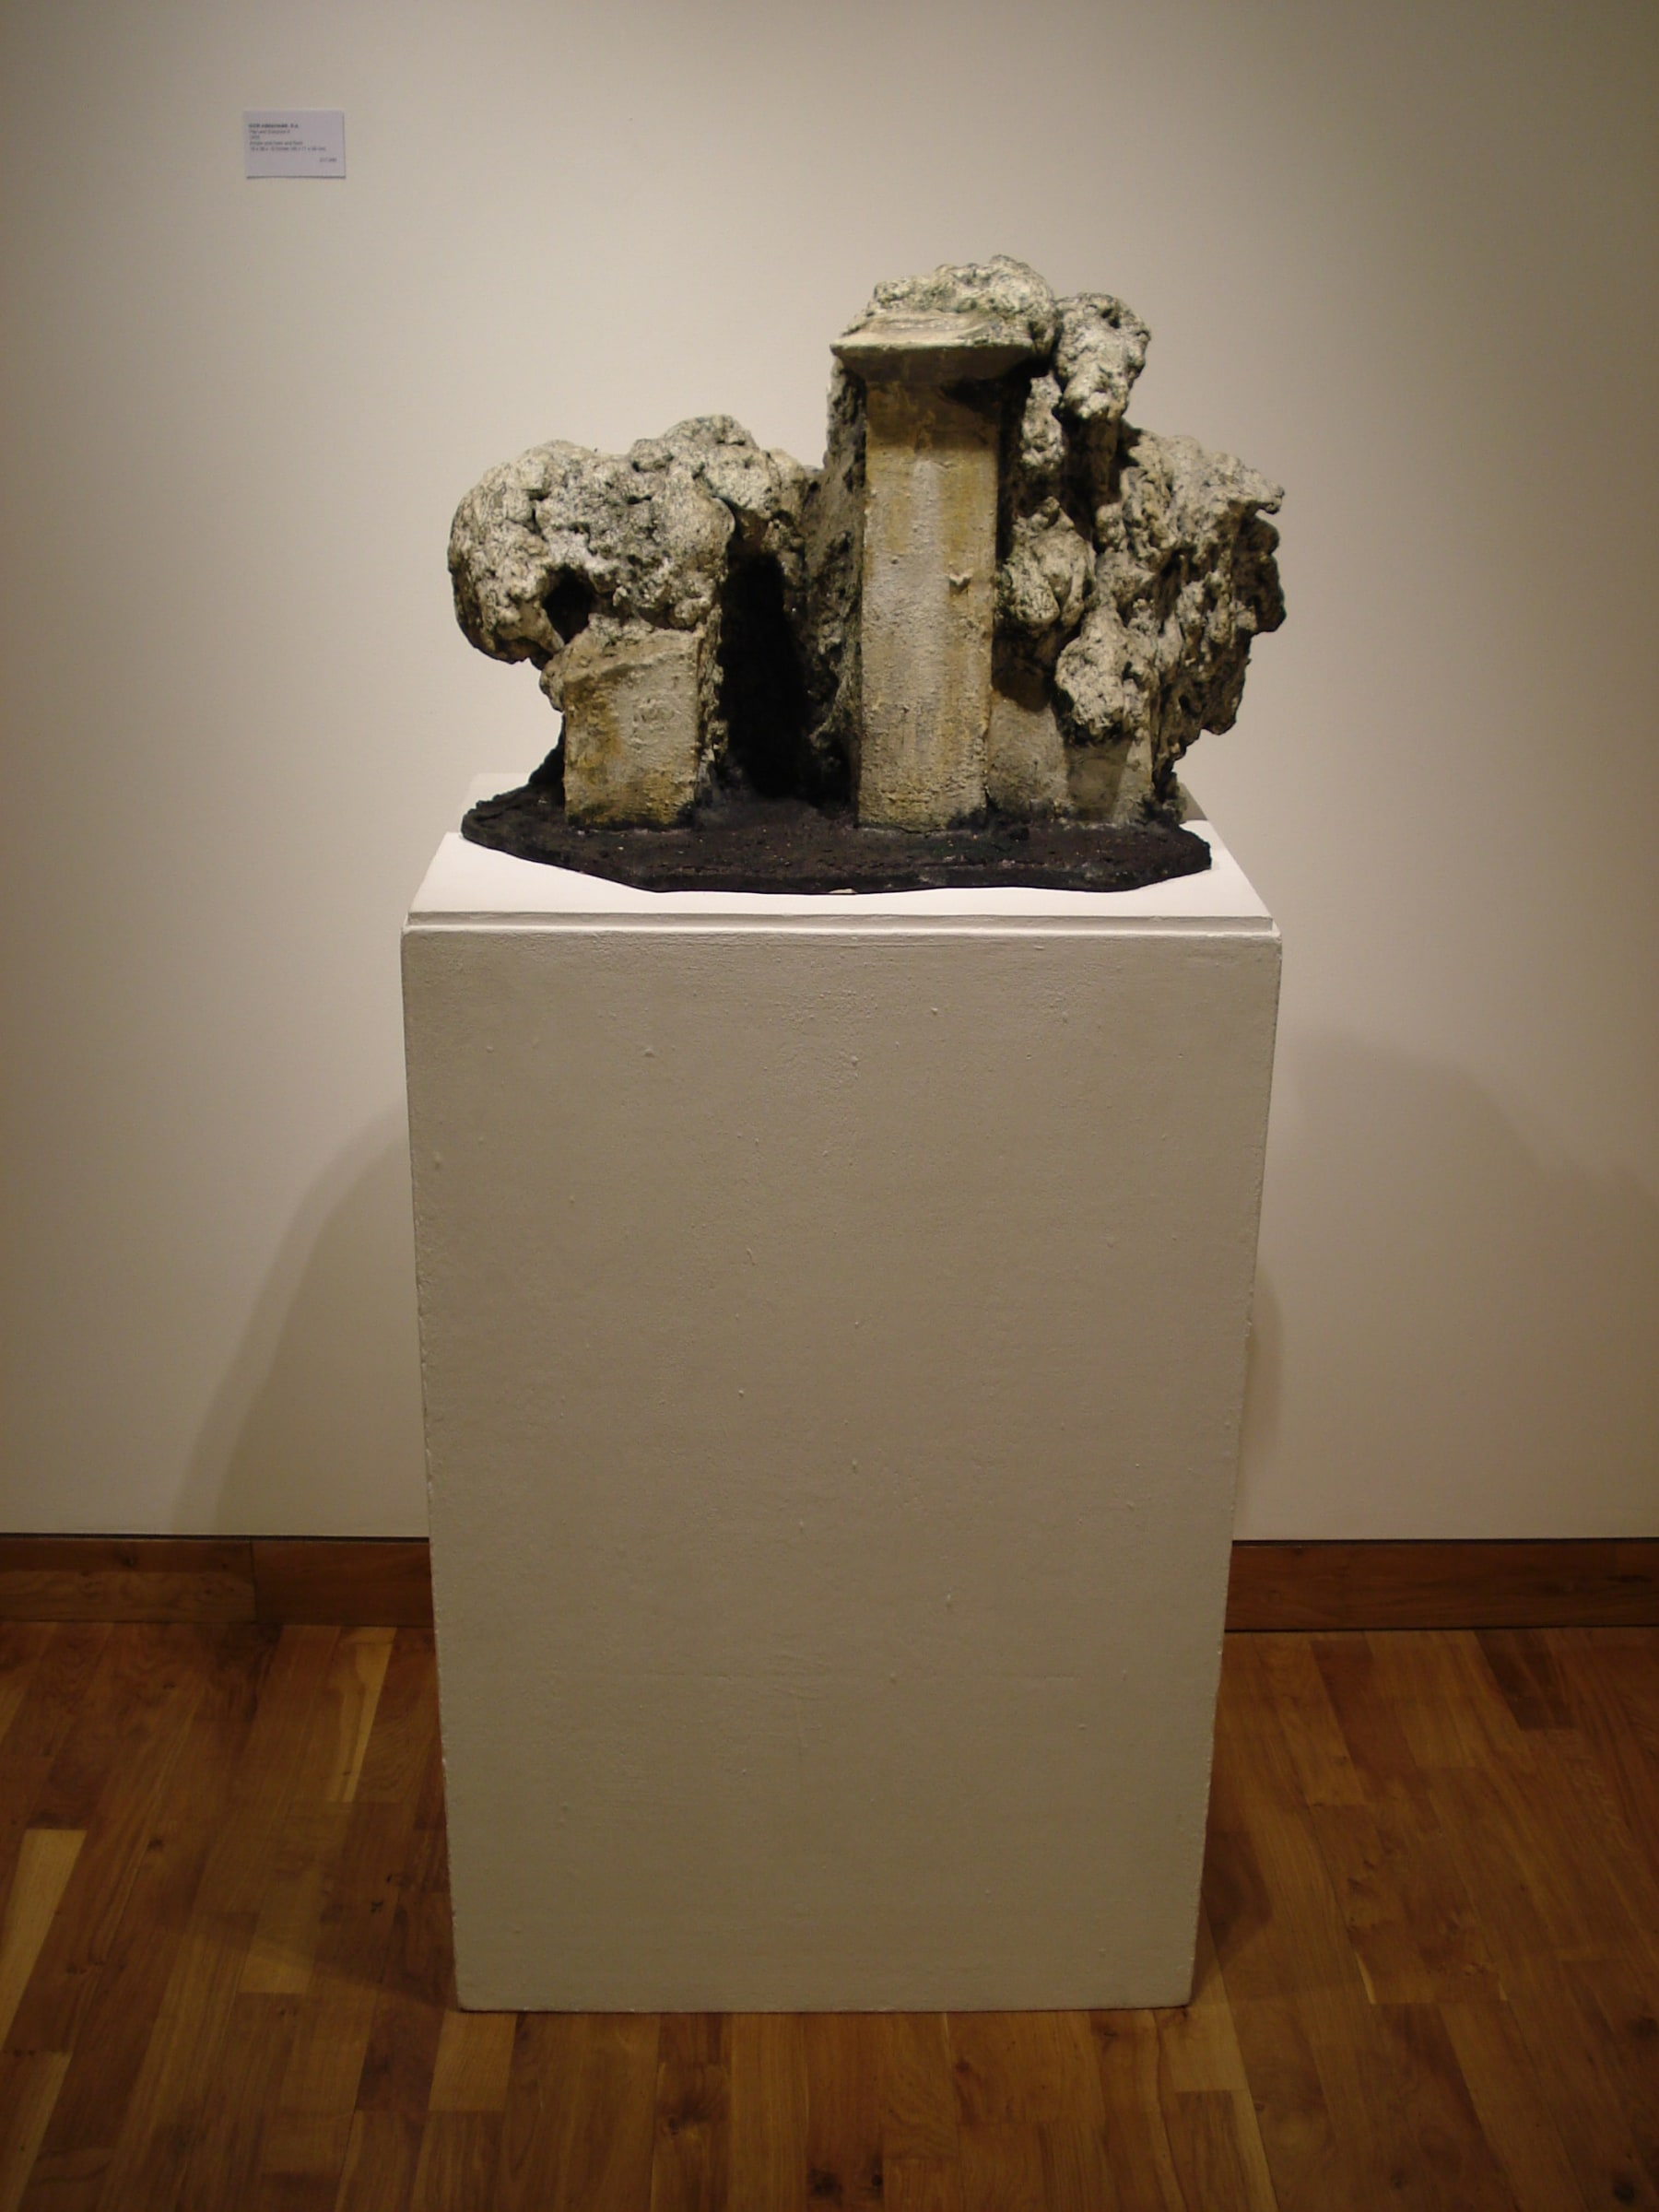 "<span class=""link fancybox-details-link""><a href=""/exhibitions/103/works/image_standalone414/"">View Detail Page</a></span><p>IVOR ABRAHAMS RA 